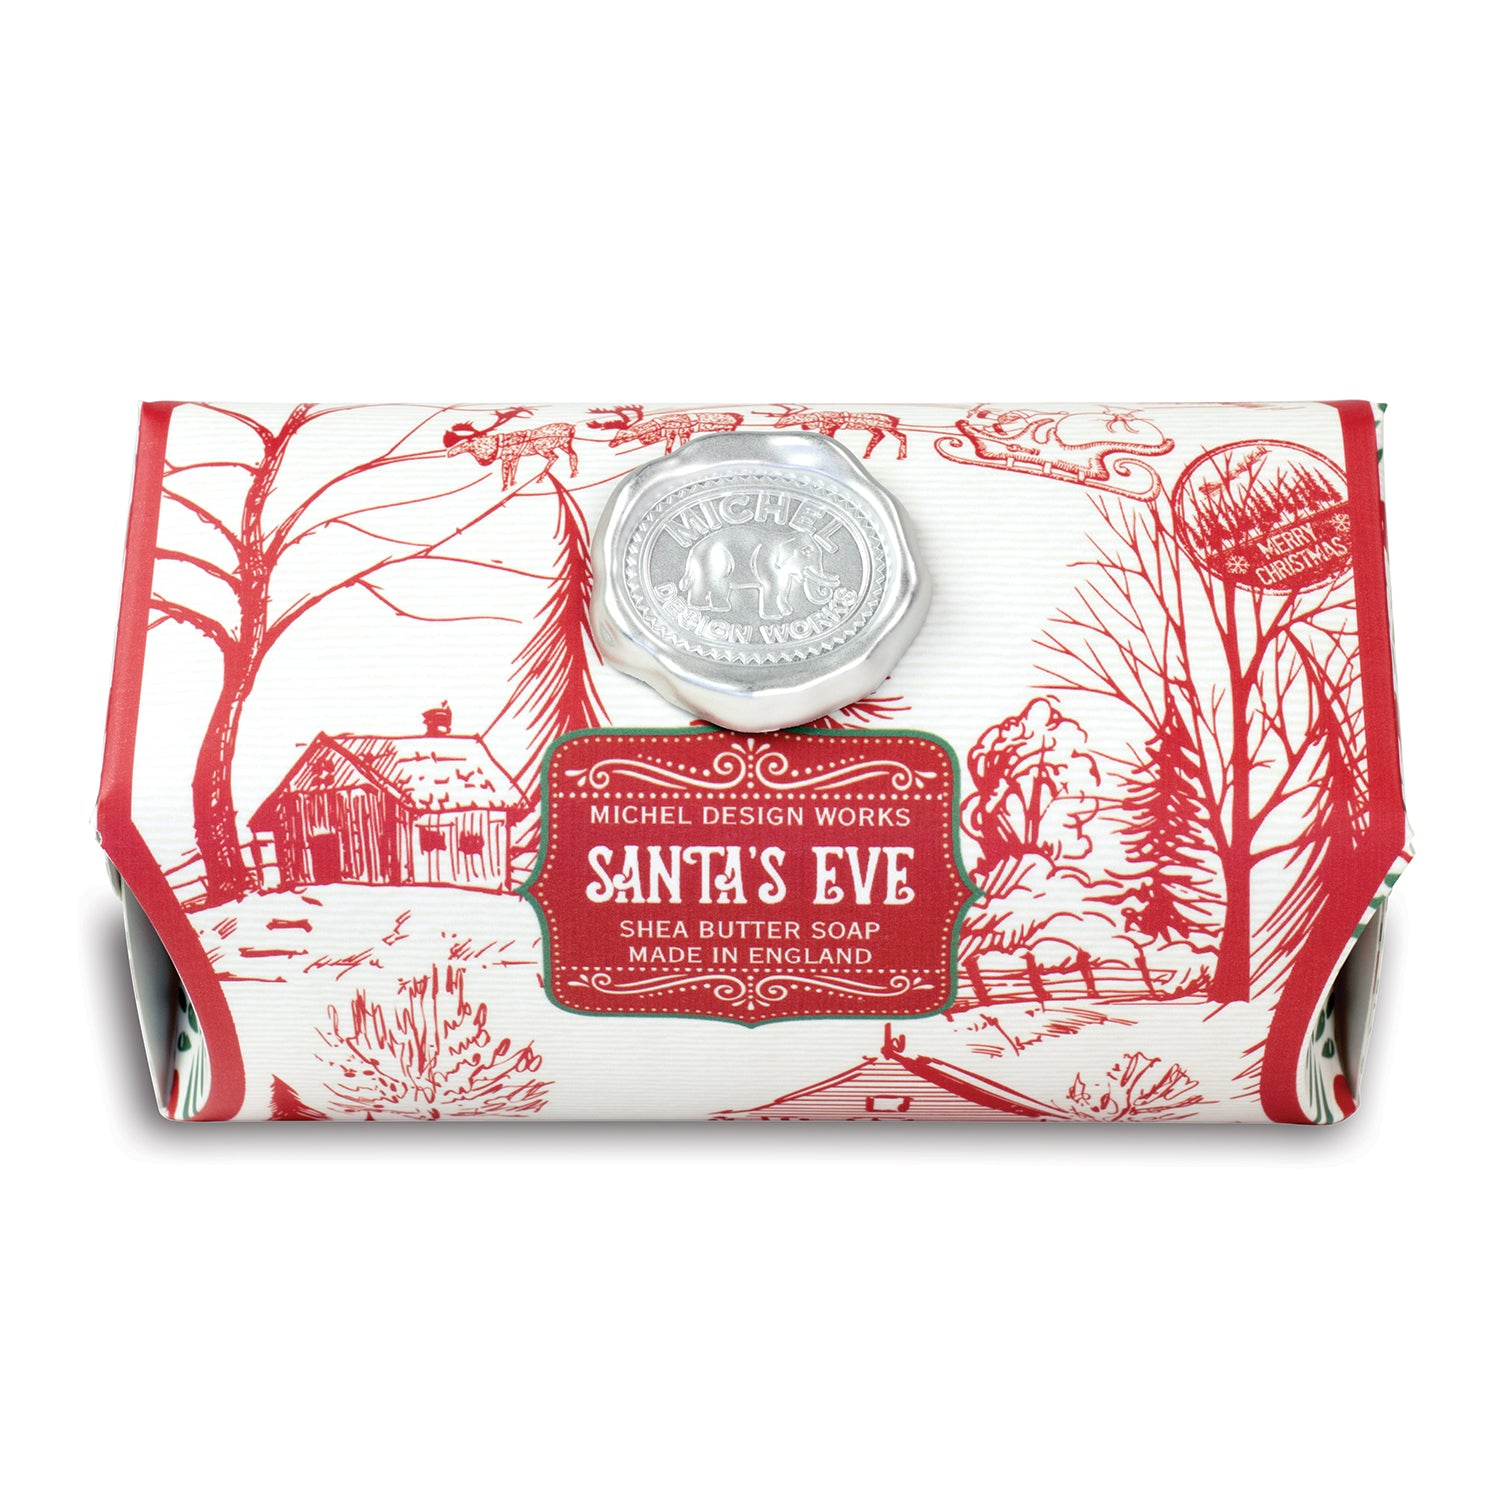 Santa's Eve Large Bath Soap Bar